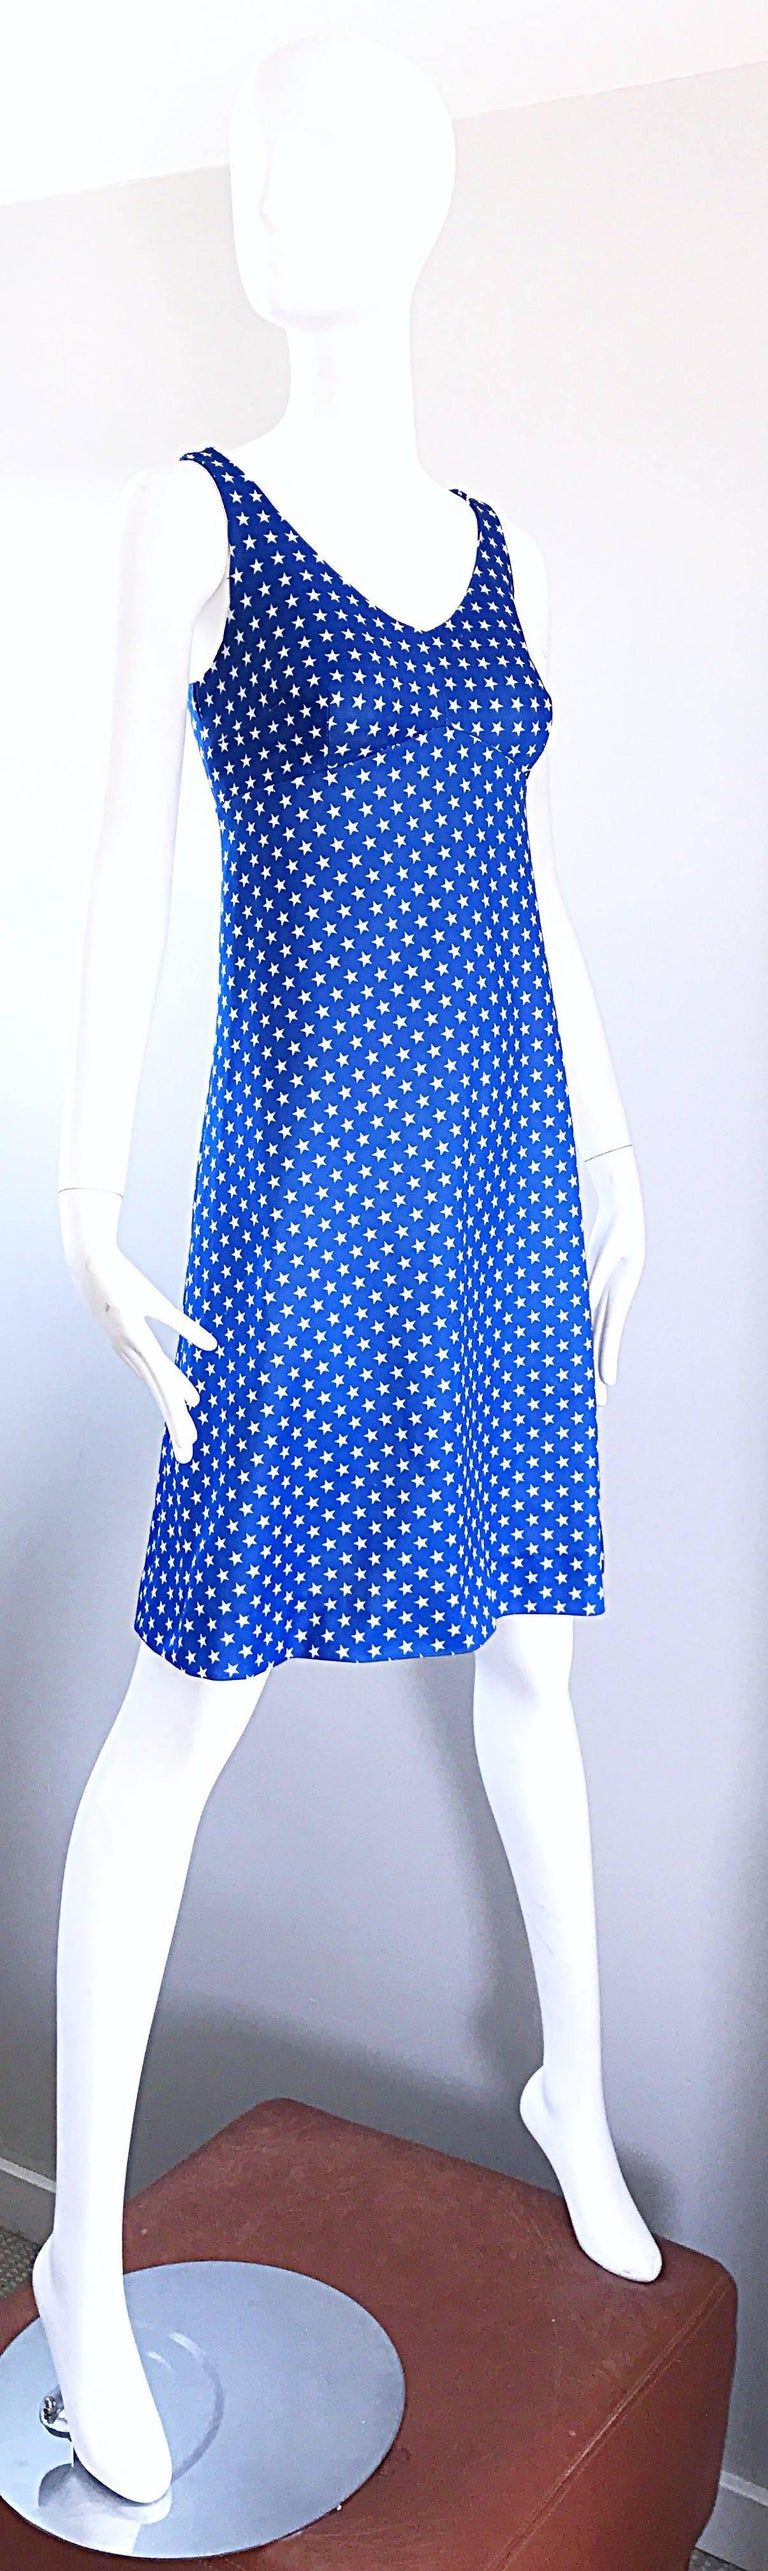 1960s Royal Blue and White Star Print A - Line Novelty Vintage 60s Dress For Sale 1